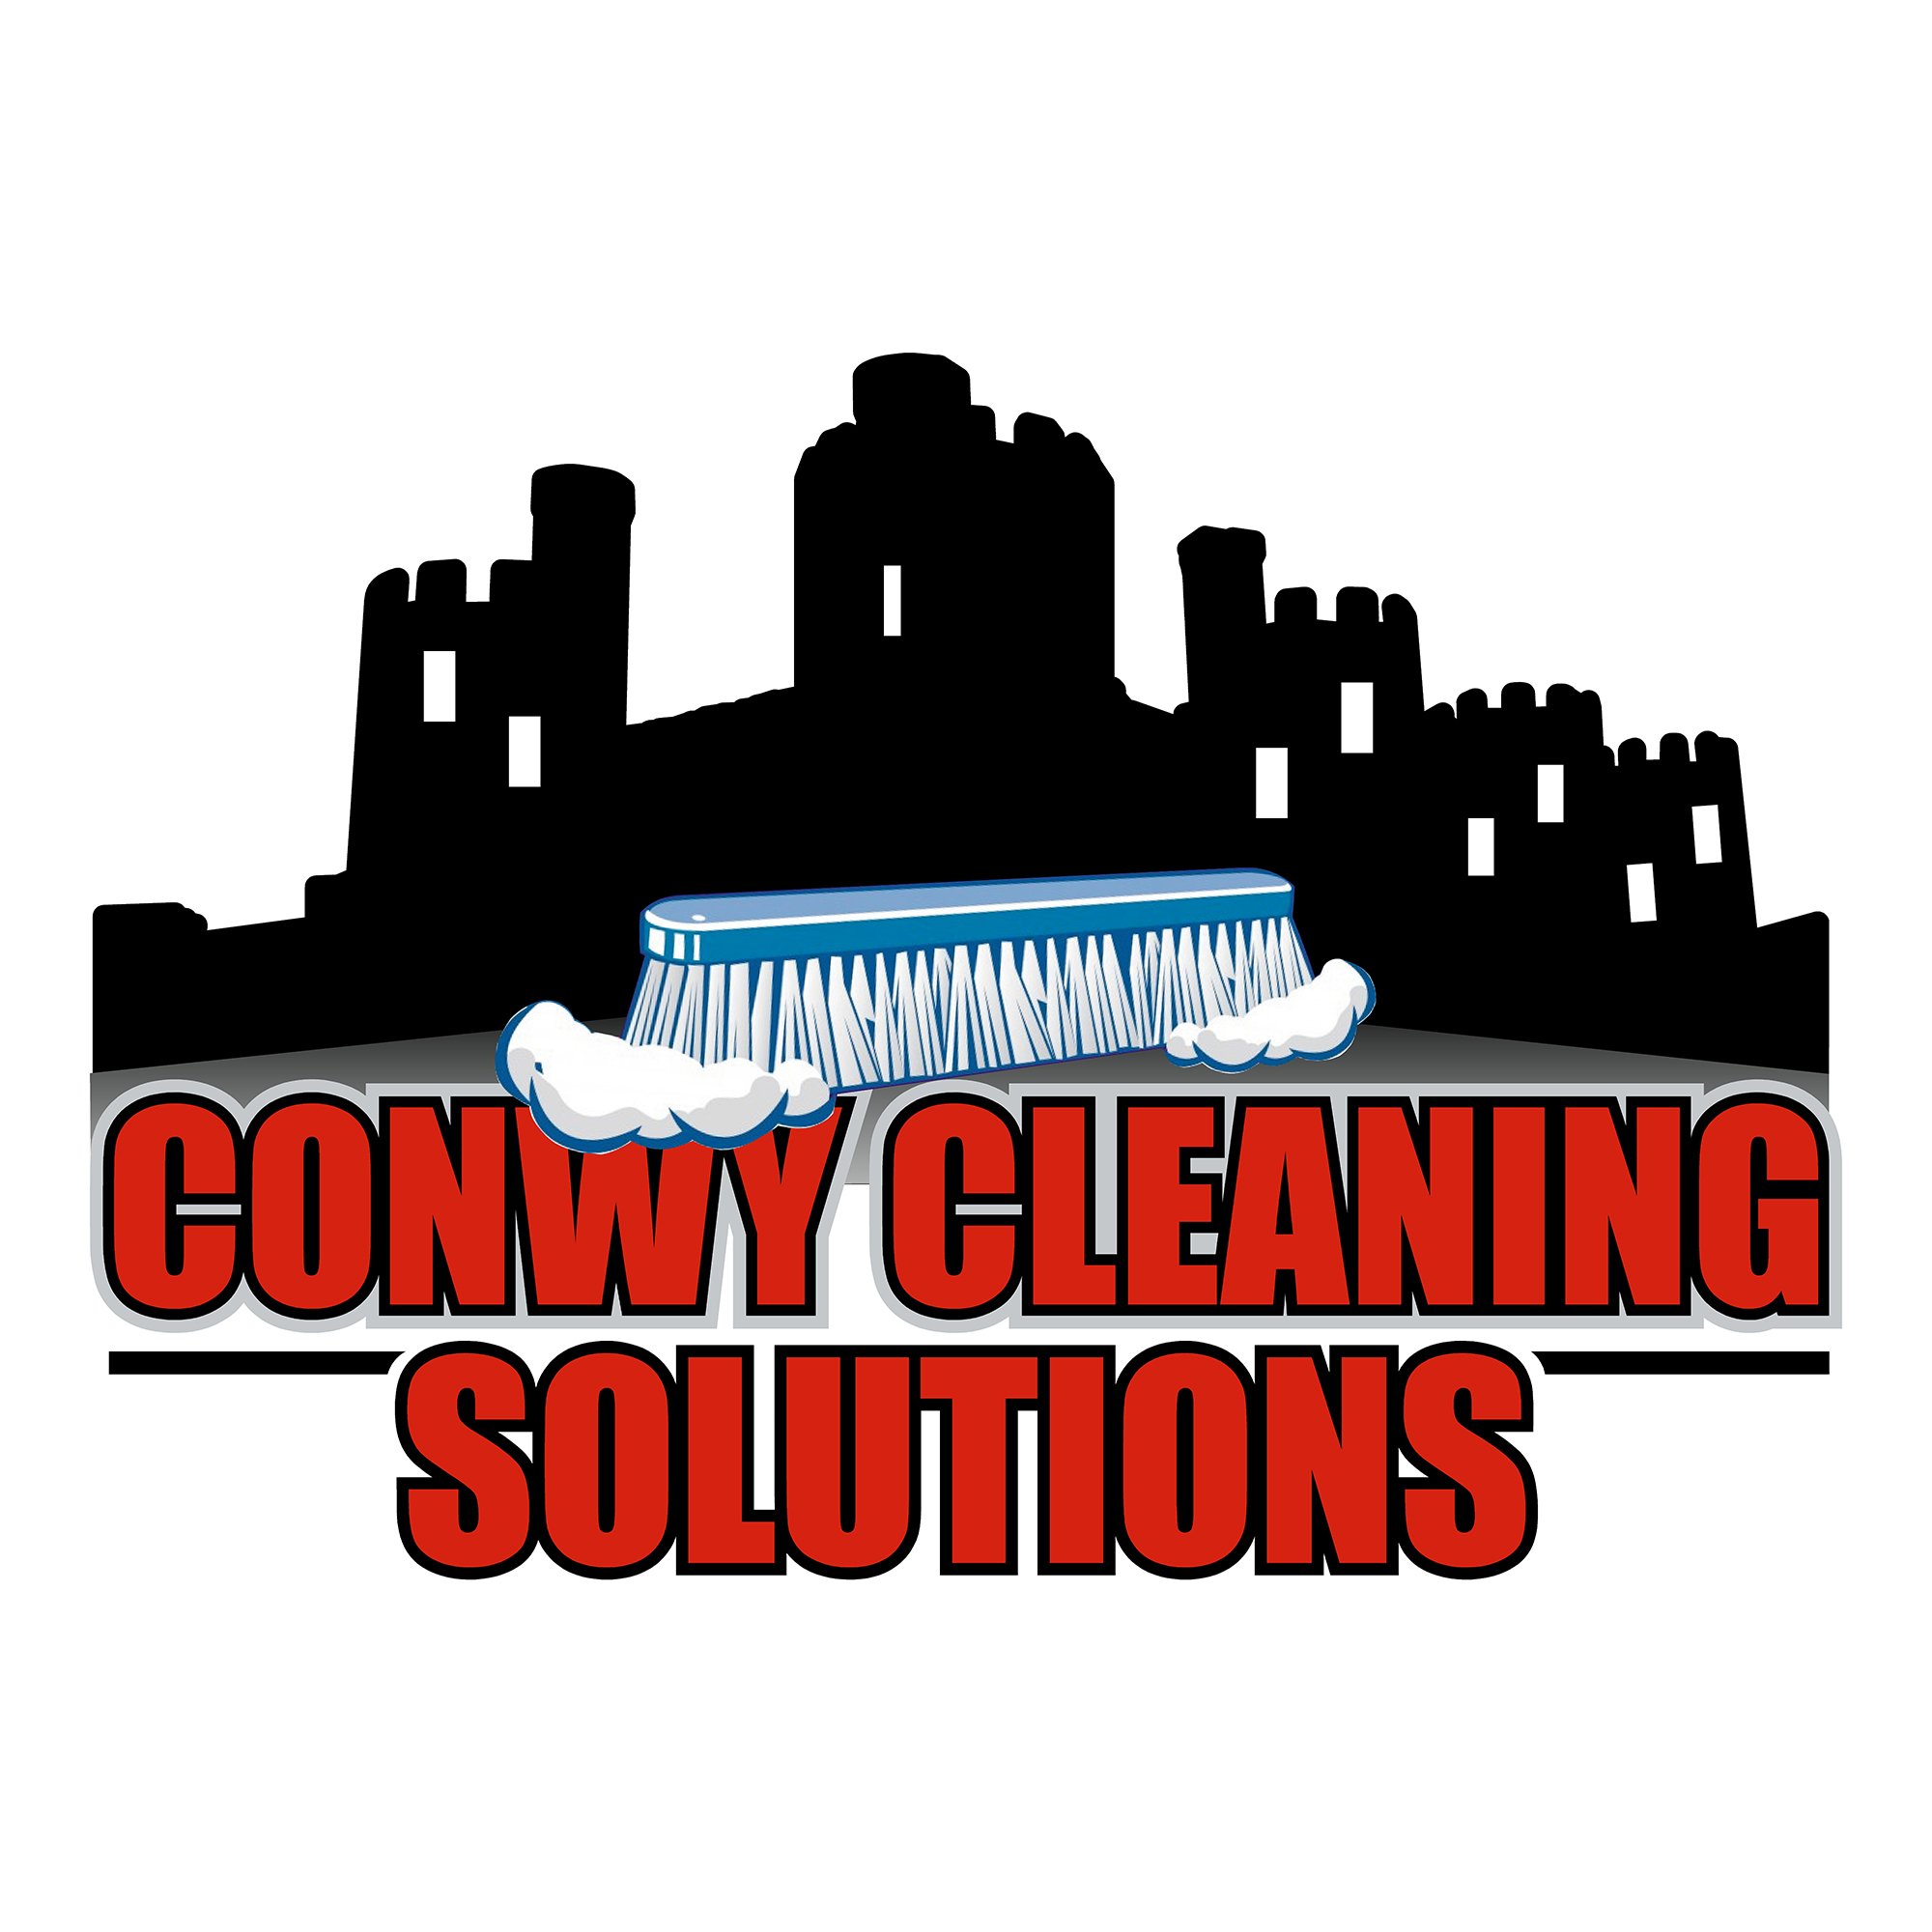 Conwy Cleaning Solutions.jpg